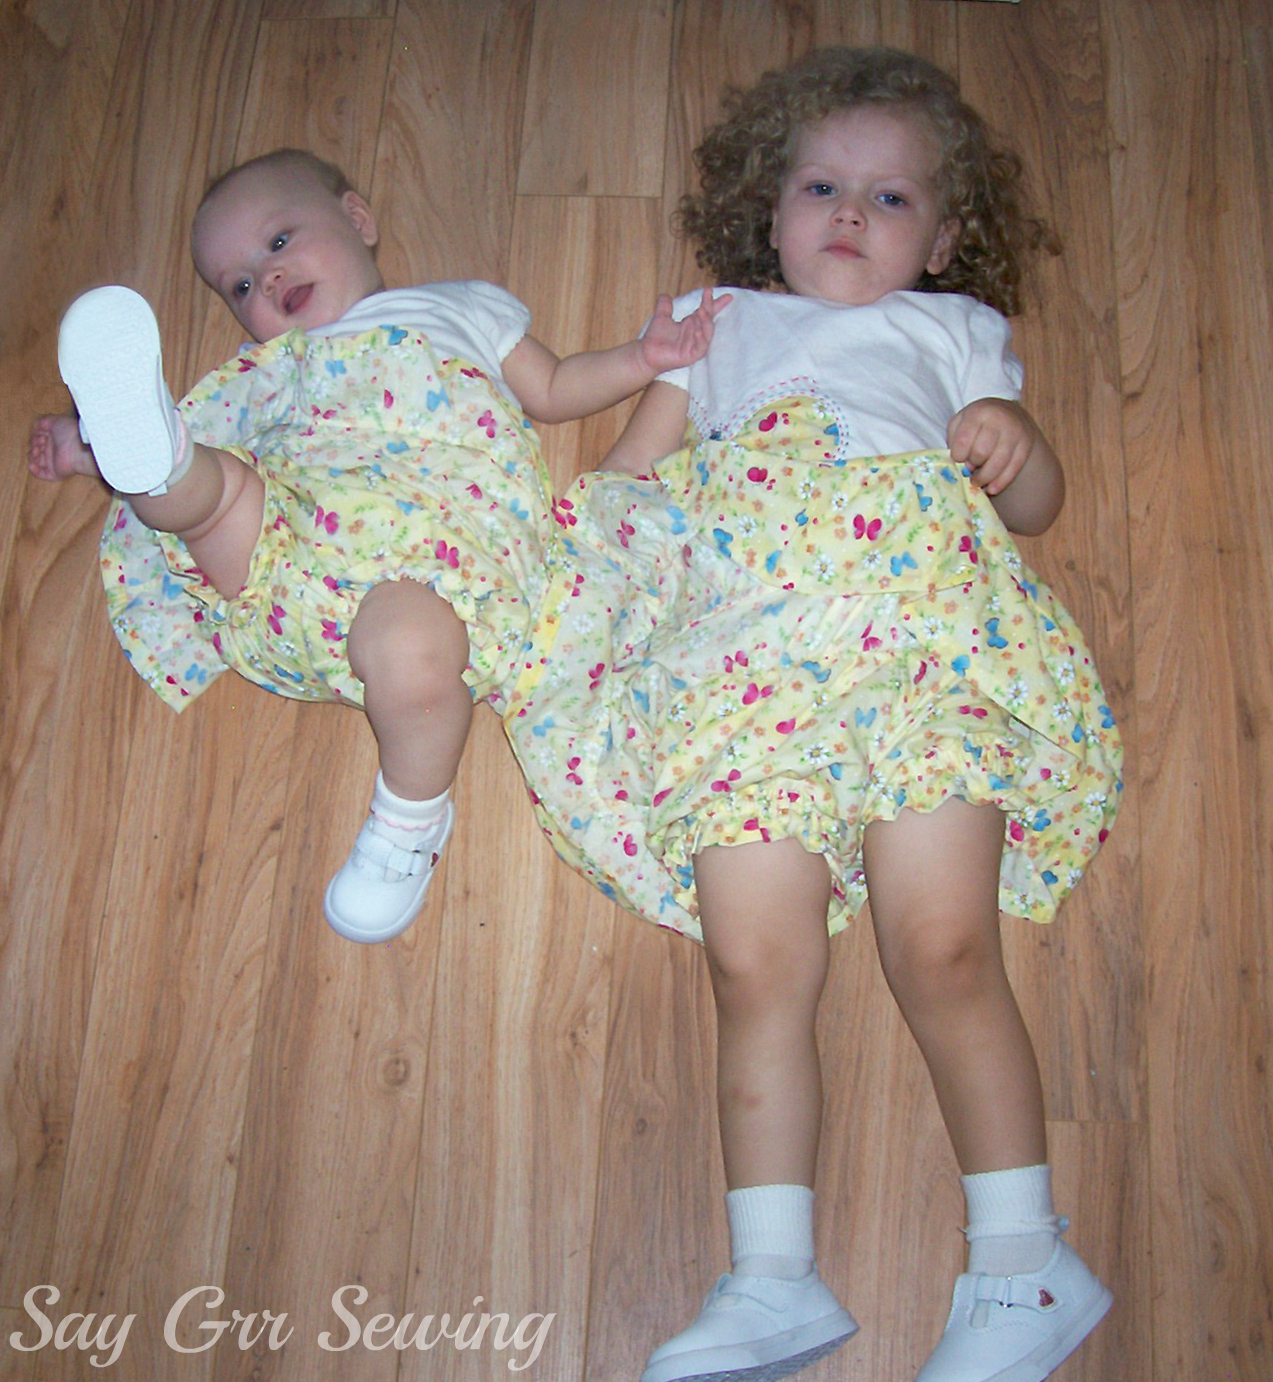 Say Grr Sewing: Butterflies and Skortsgirls in diapers